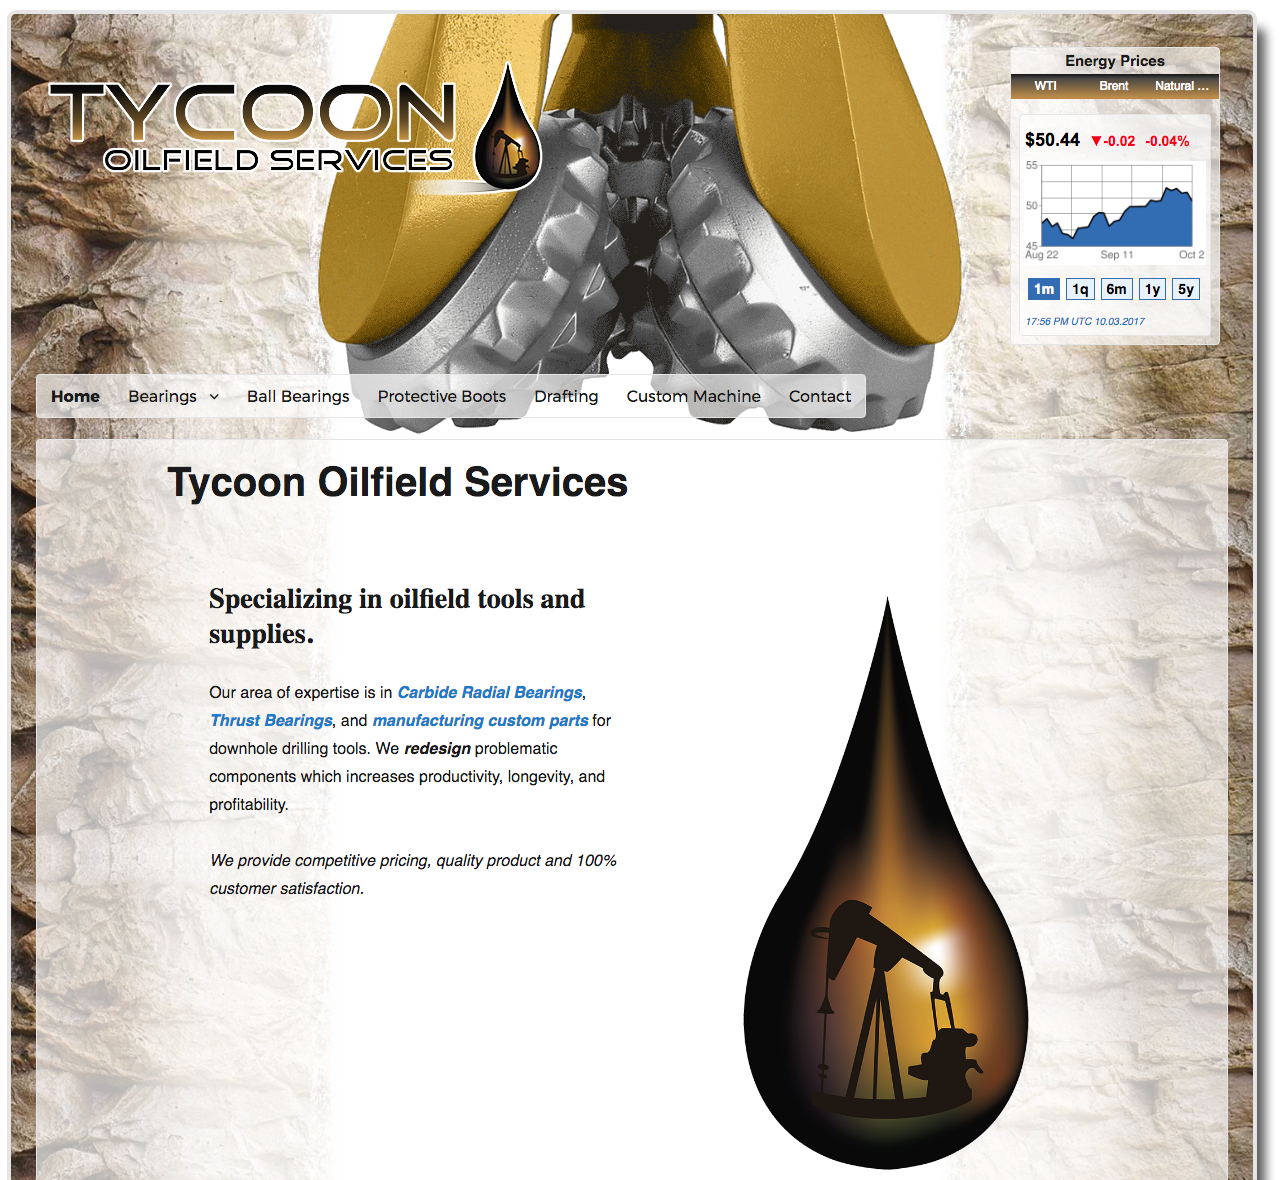 Tycoon Oilfield Services